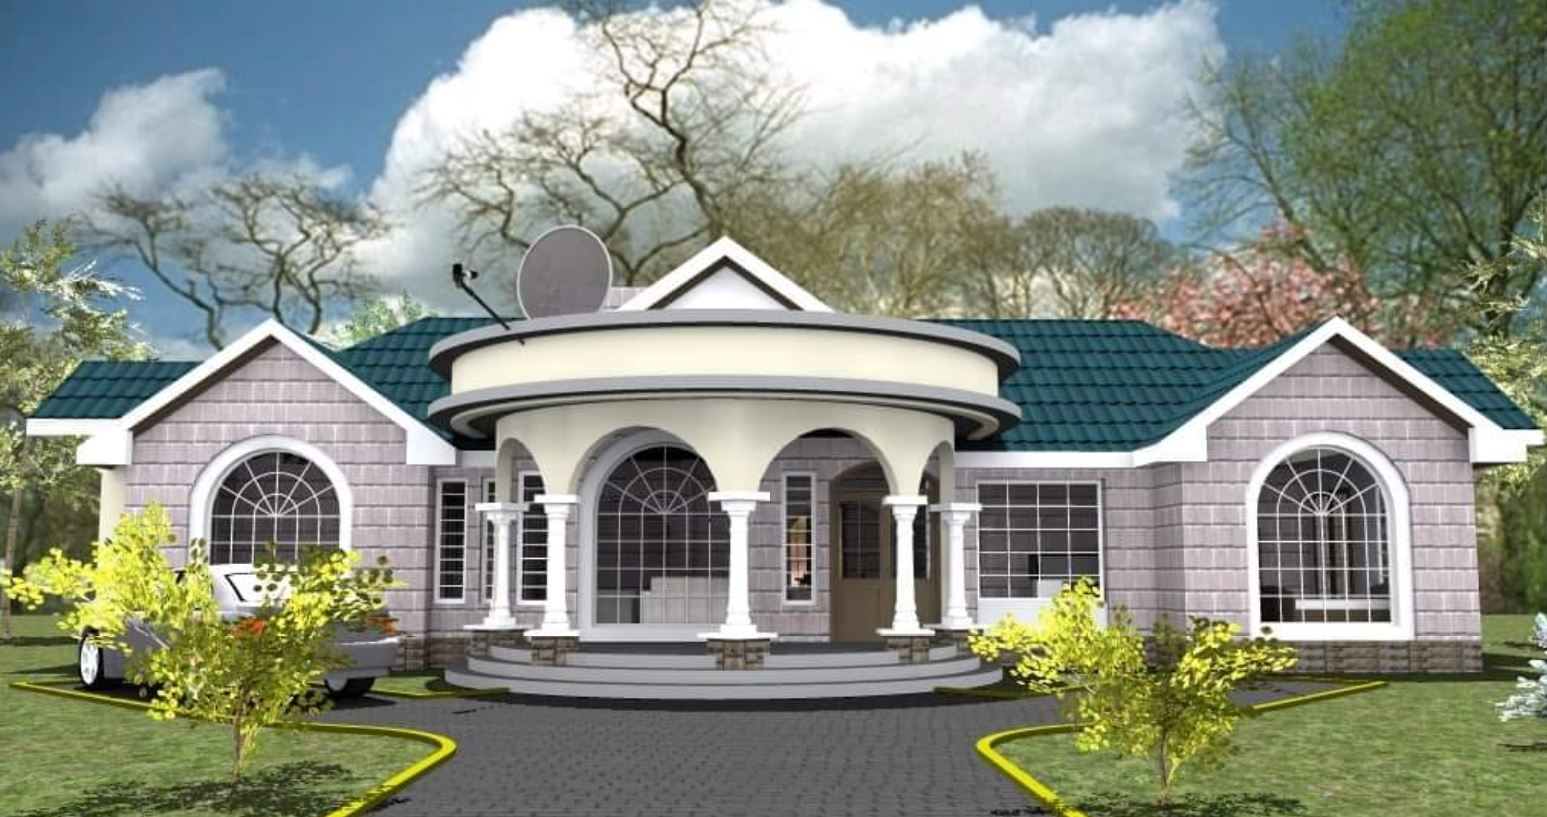 Top 10 Best Modern House Plans In Kenya You Must Consider,2 Chandelier Over Dining Table